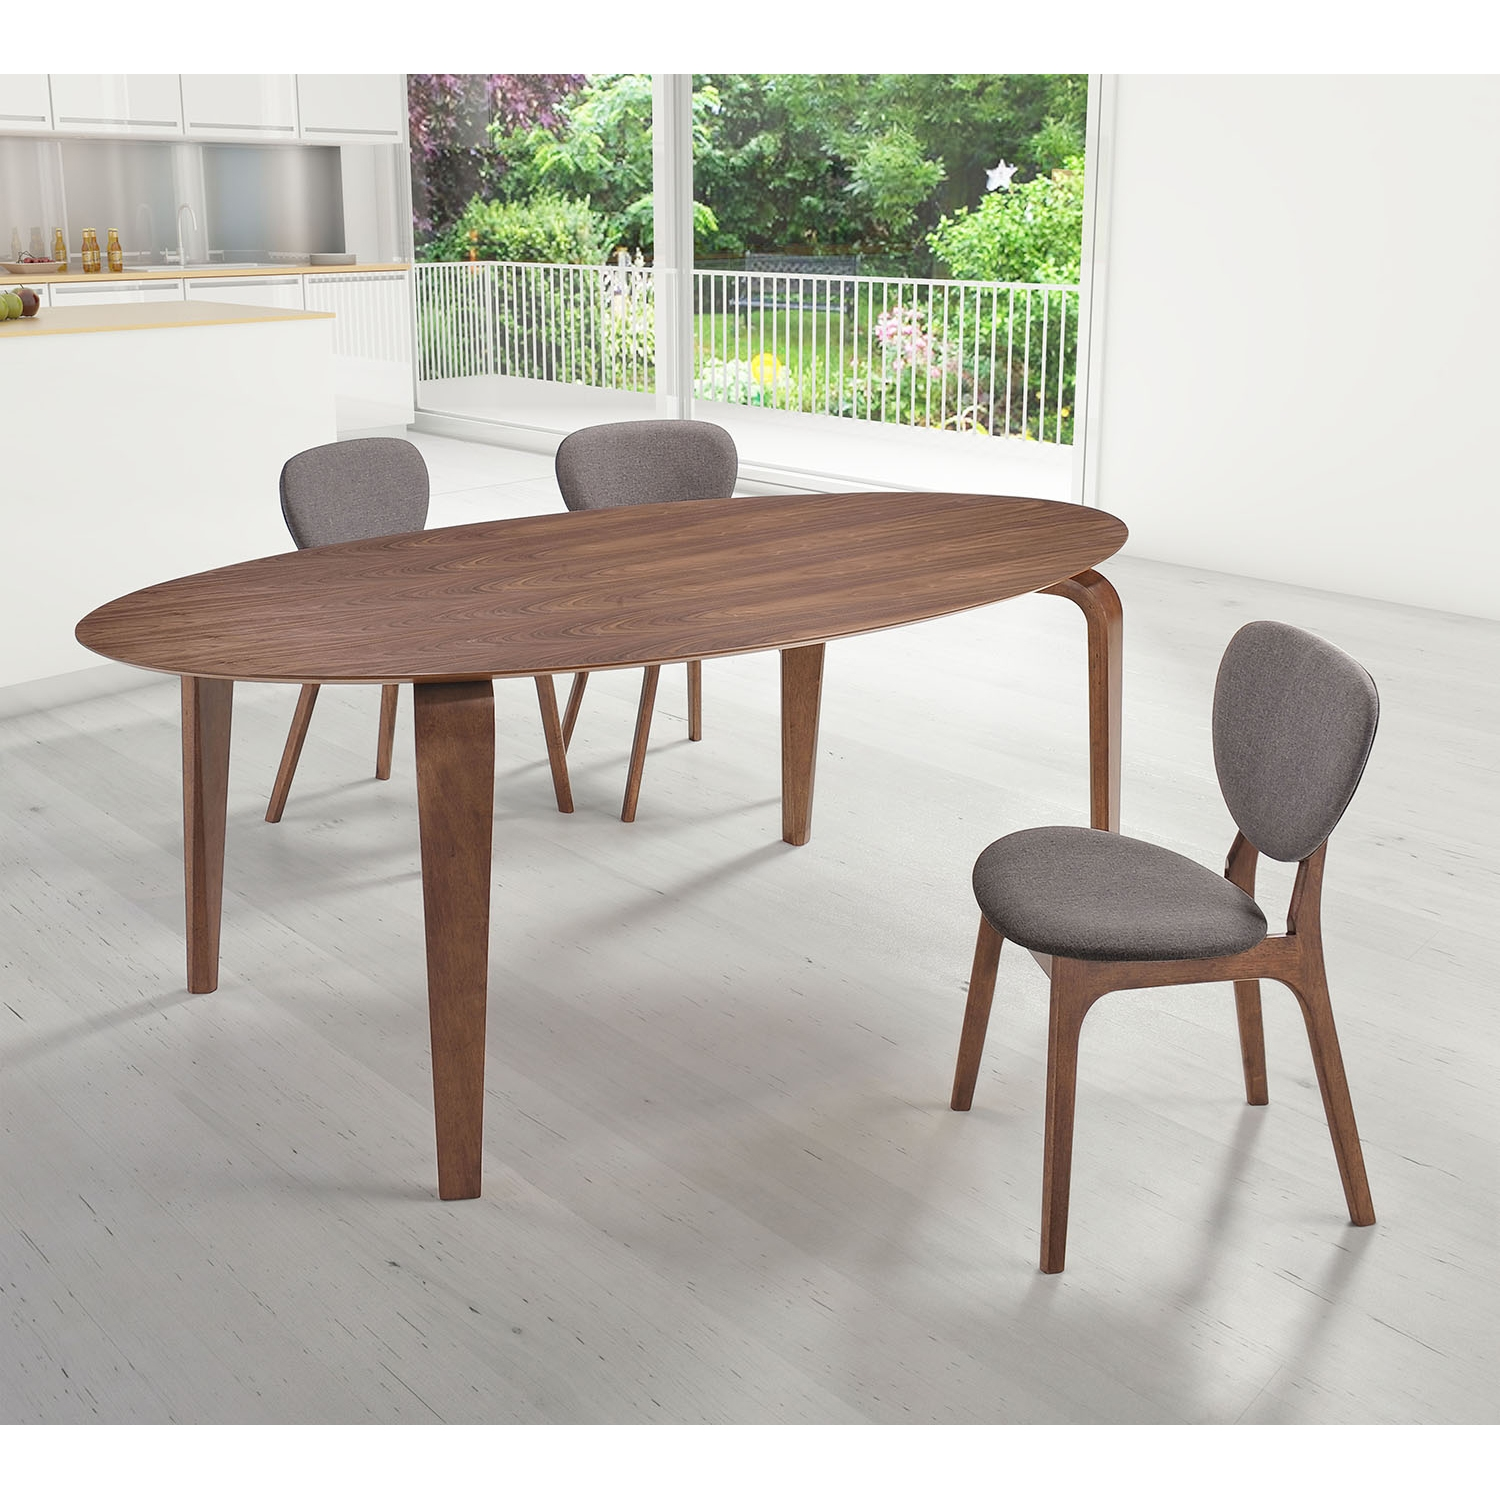 Virginia Key Dining Table - Walnut - ZM-100099